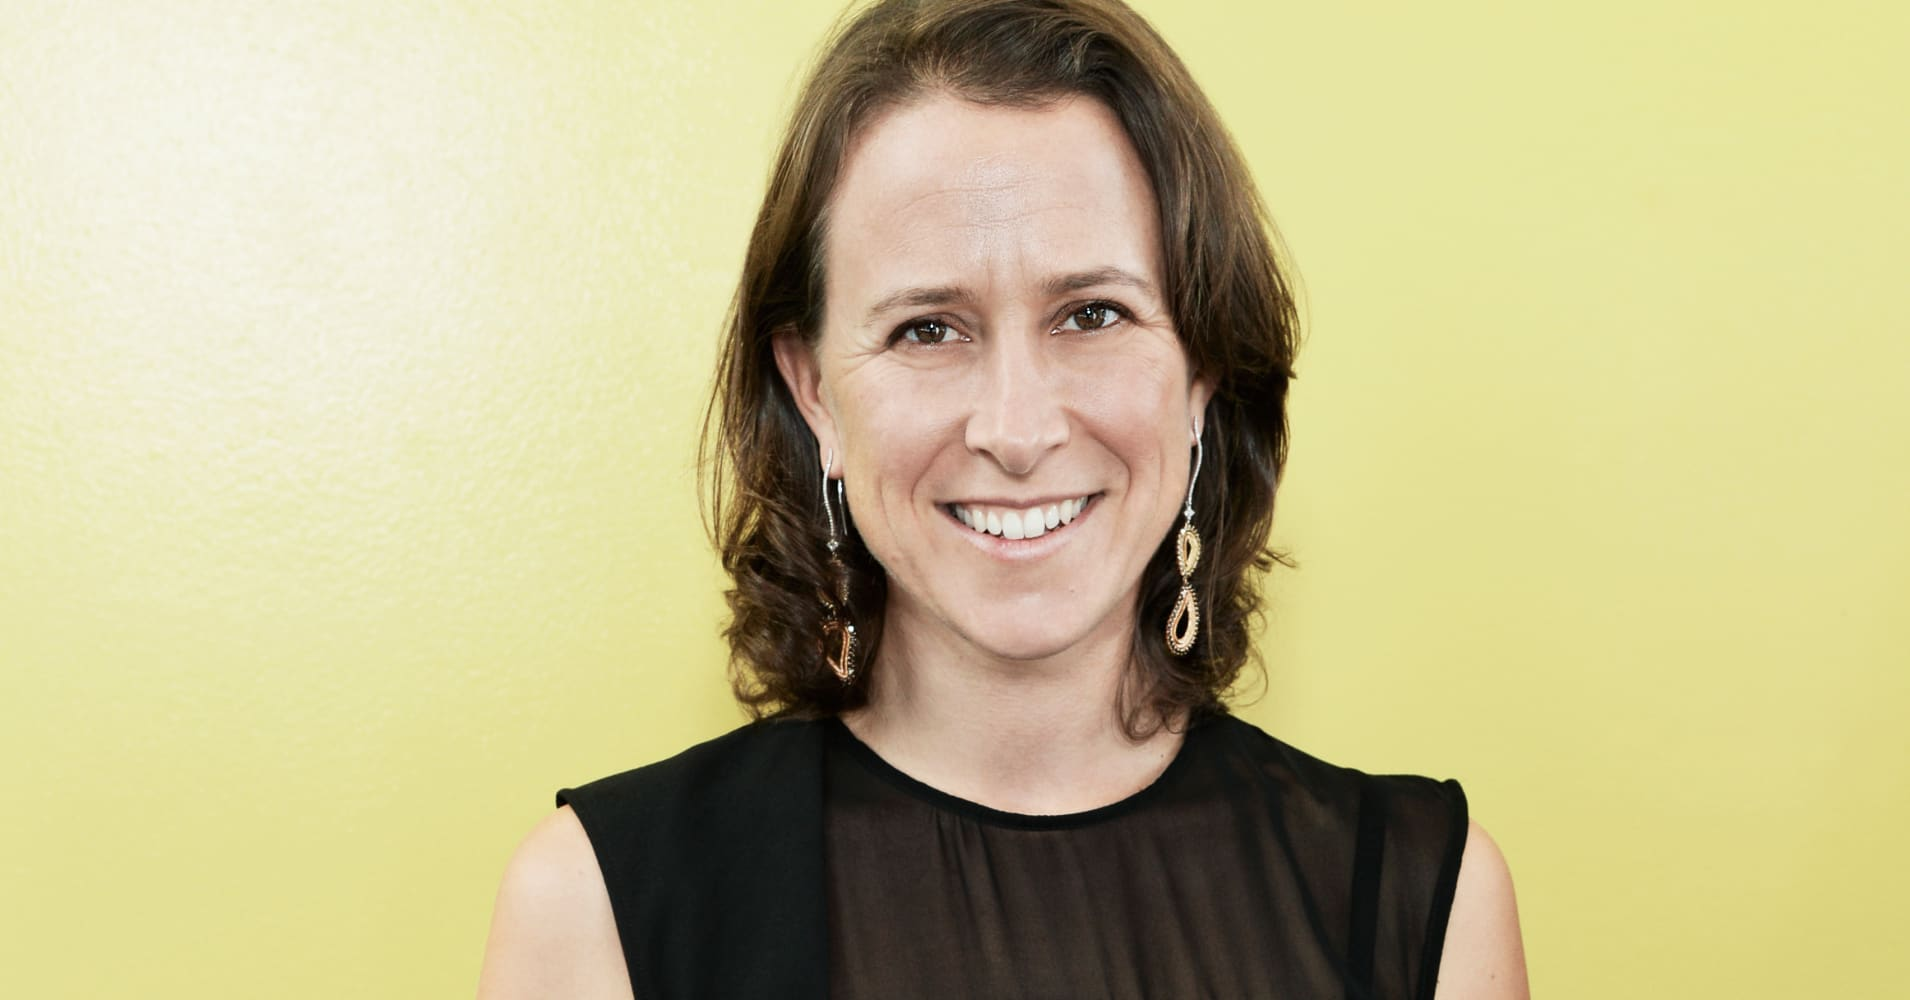 23andMe took years building a direct-to-consumer health business